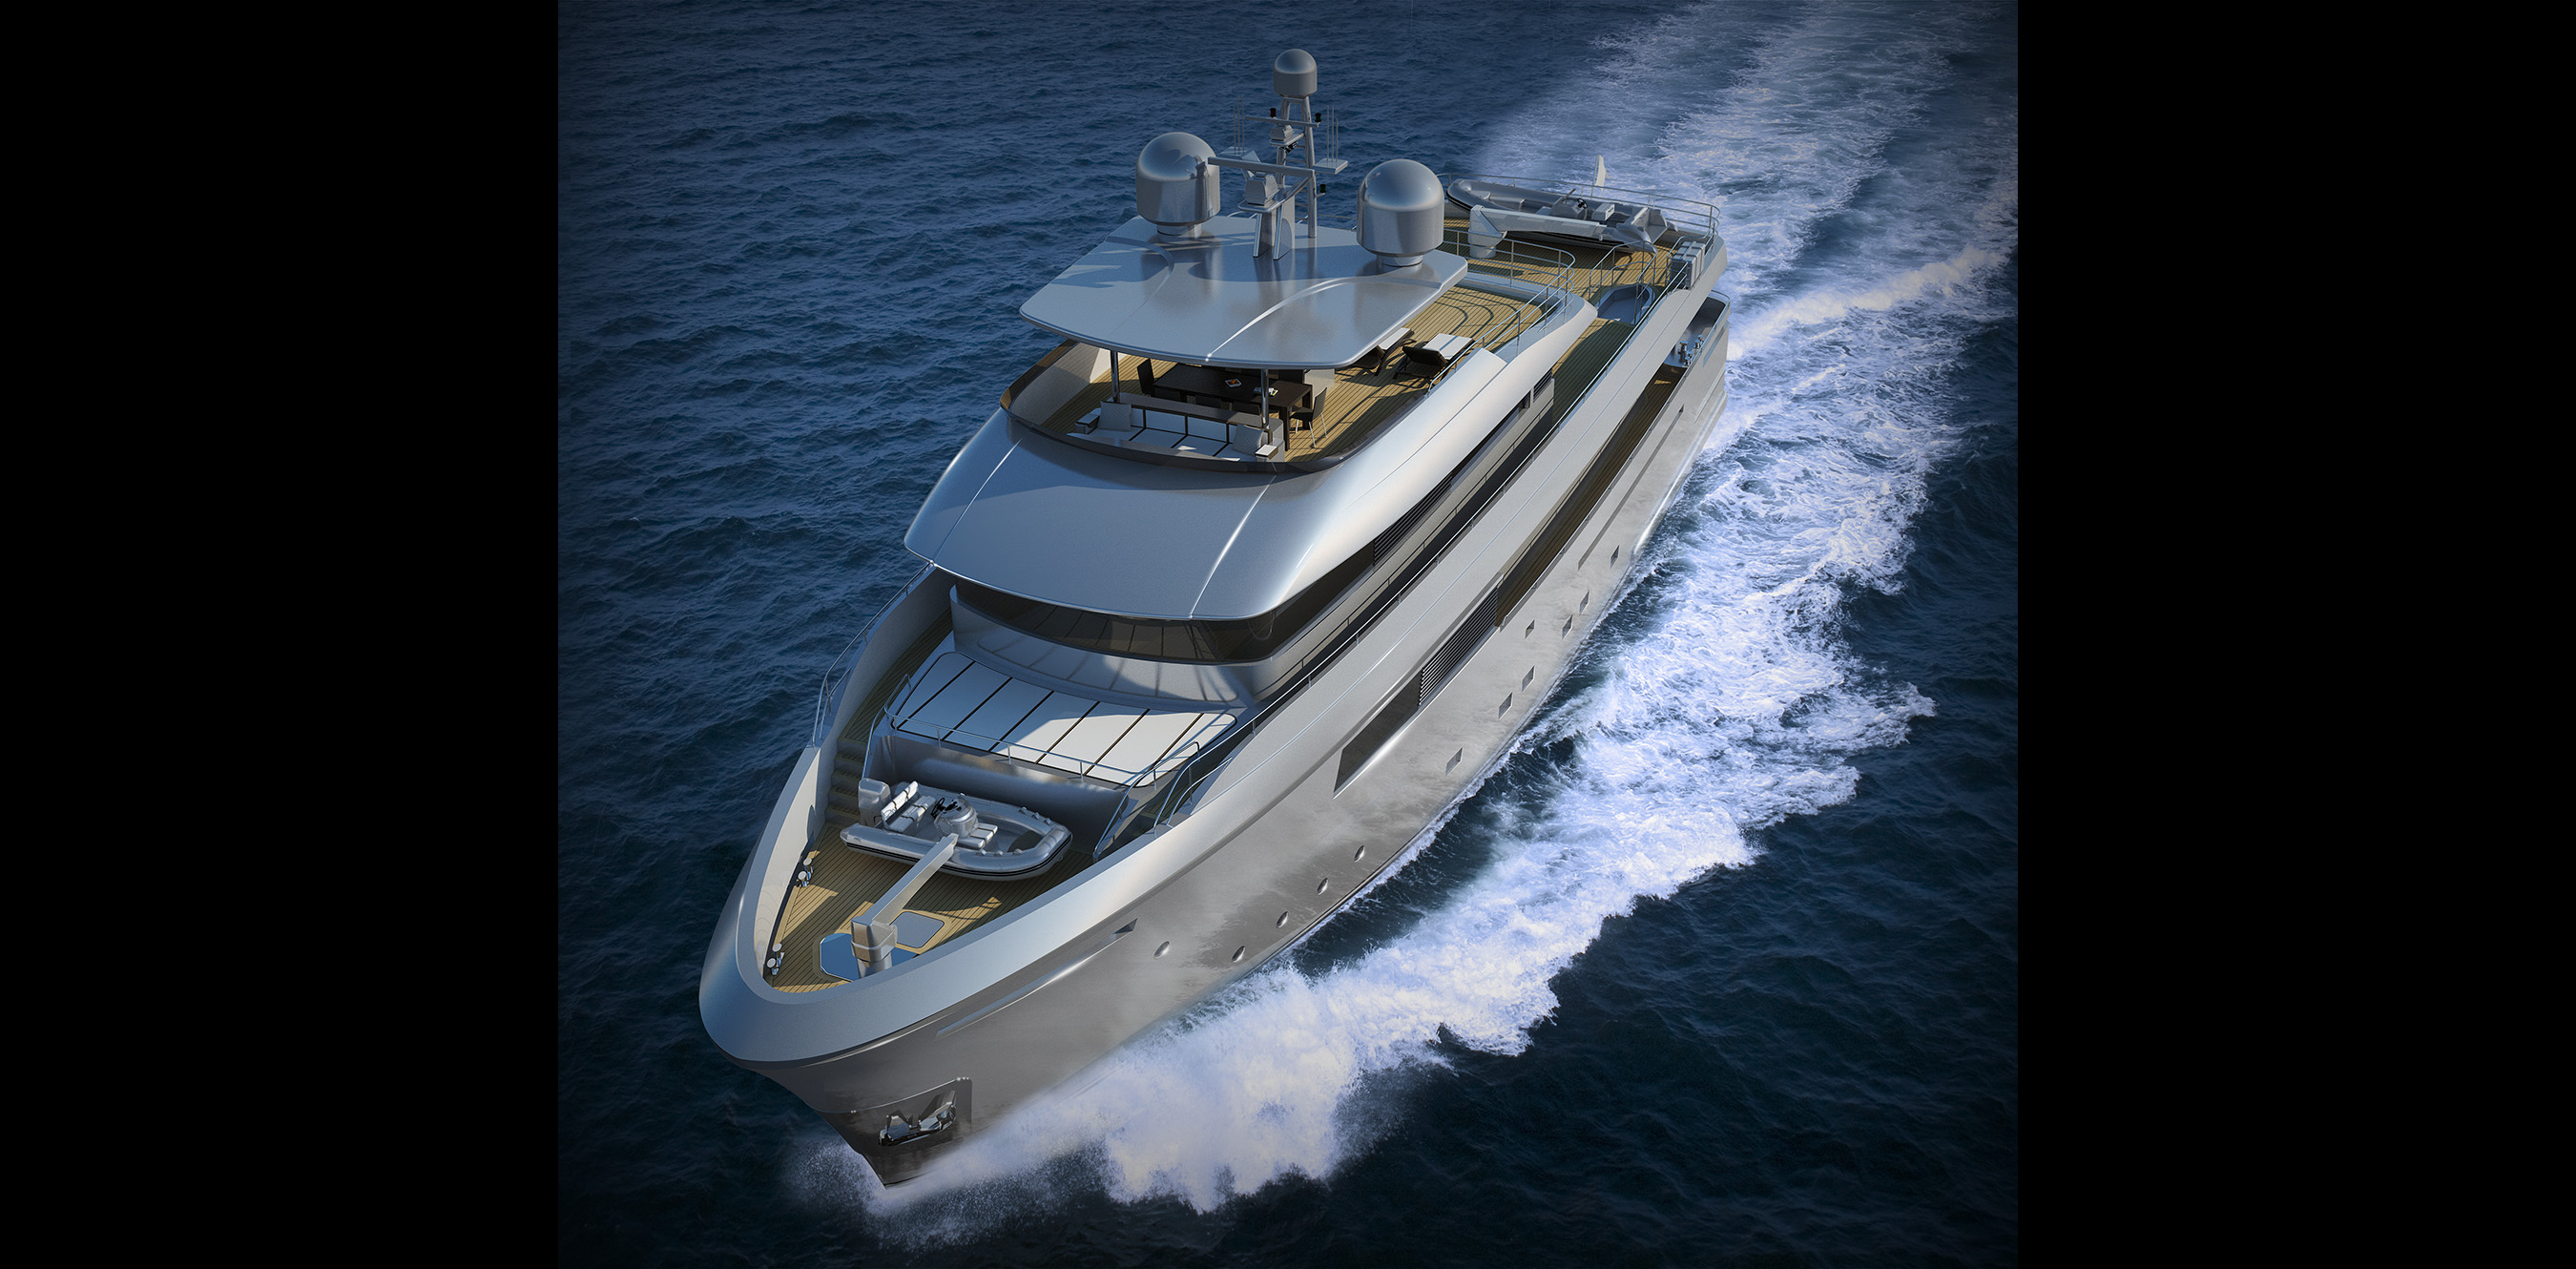 Kingship Expedition Yacht - Hydrotec